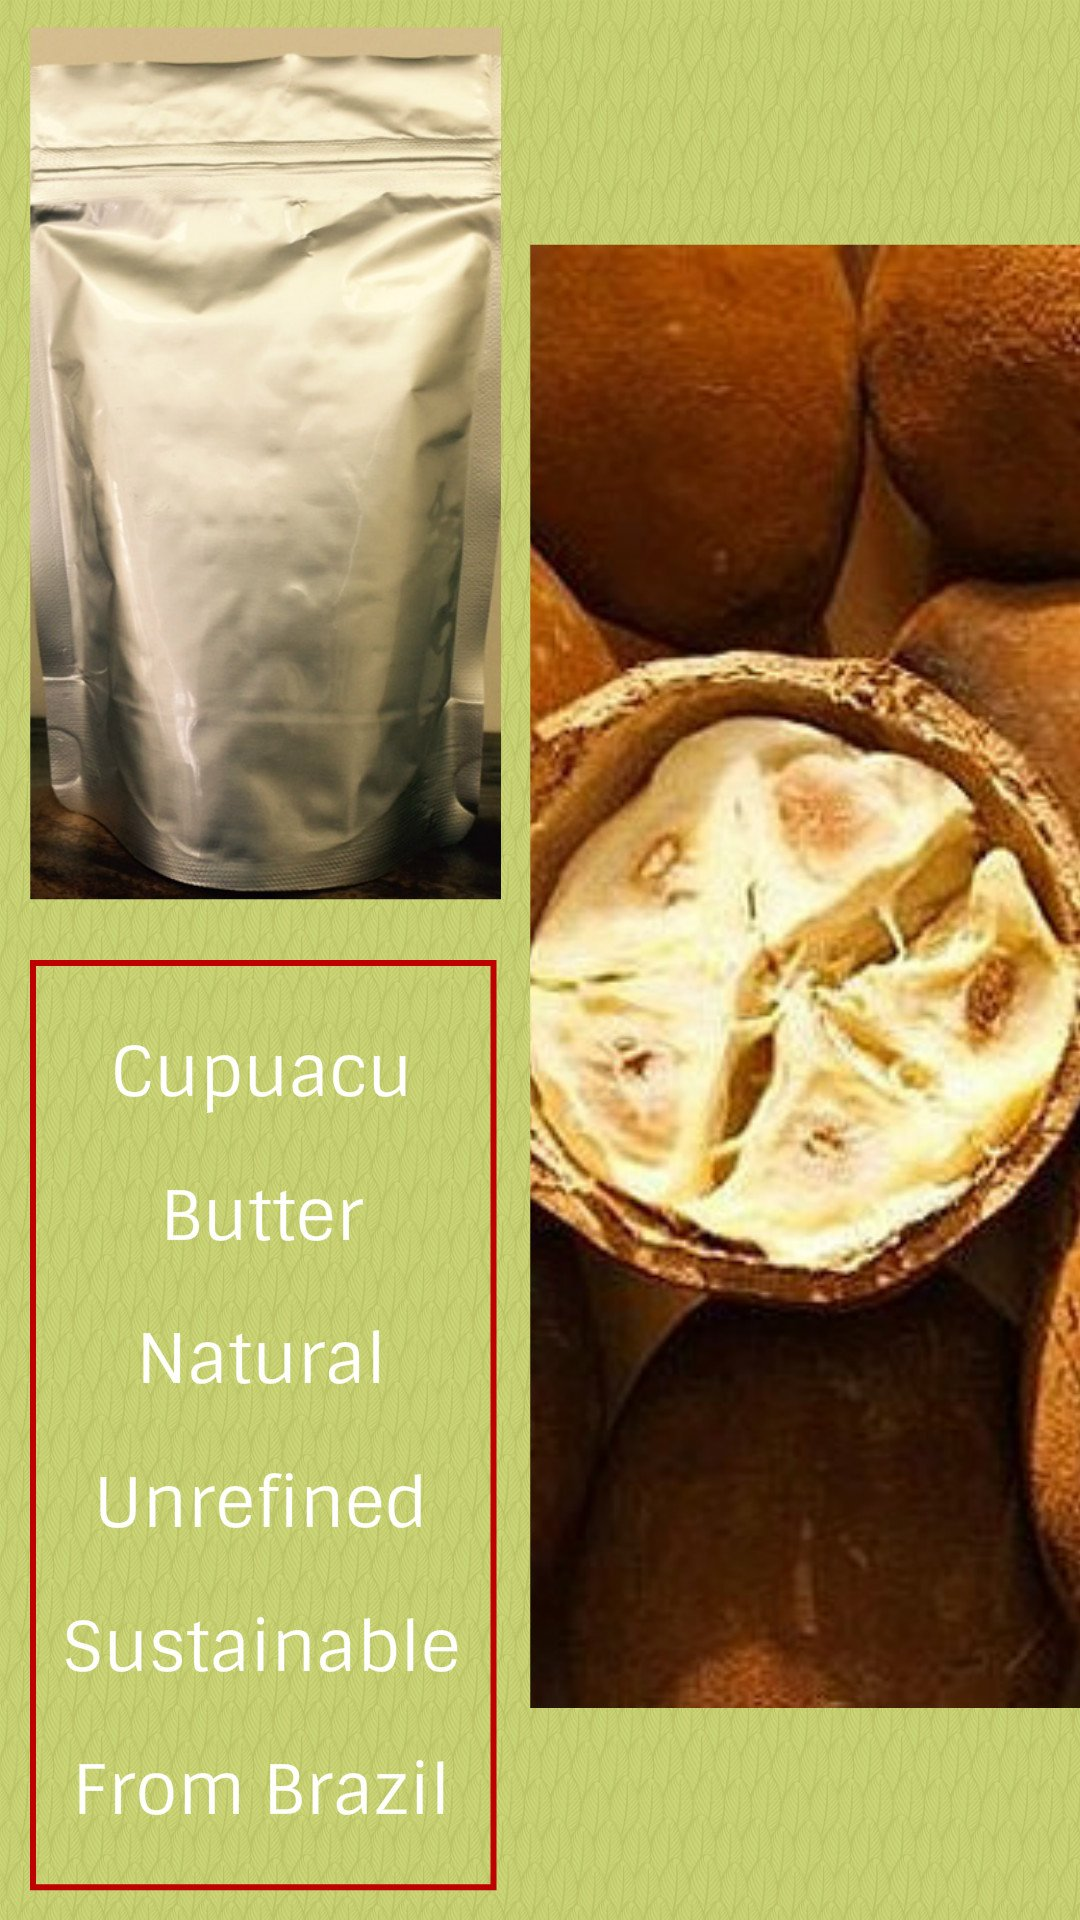 Cupuaçu Butter - 32 Oz (2 lb) - WHOLESALE PRICE & - Raw & Unrefined - Sustainable Product